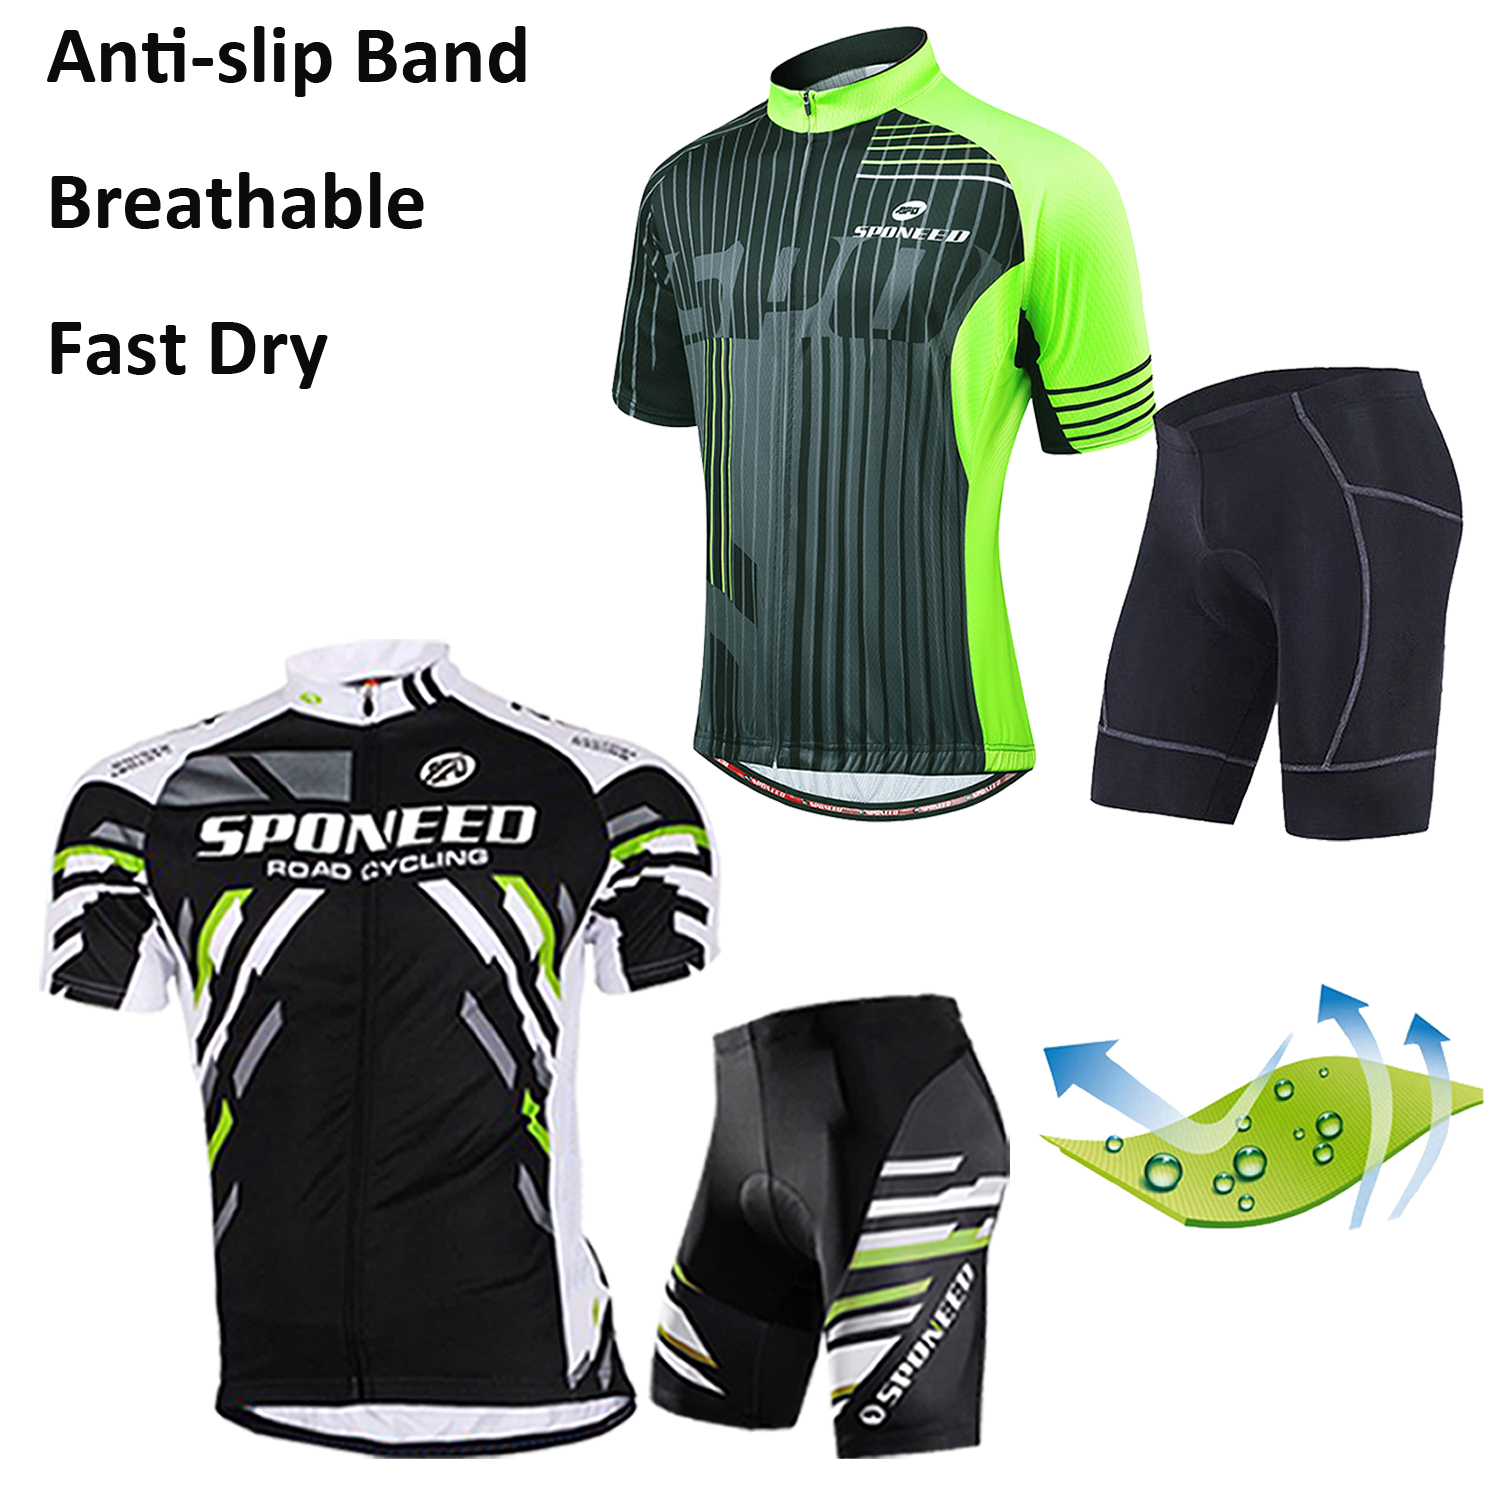 Mens Road Bike Jersey Men/'s Full Zipper Bicycle Shirt Short Biking Apperal M-3XL